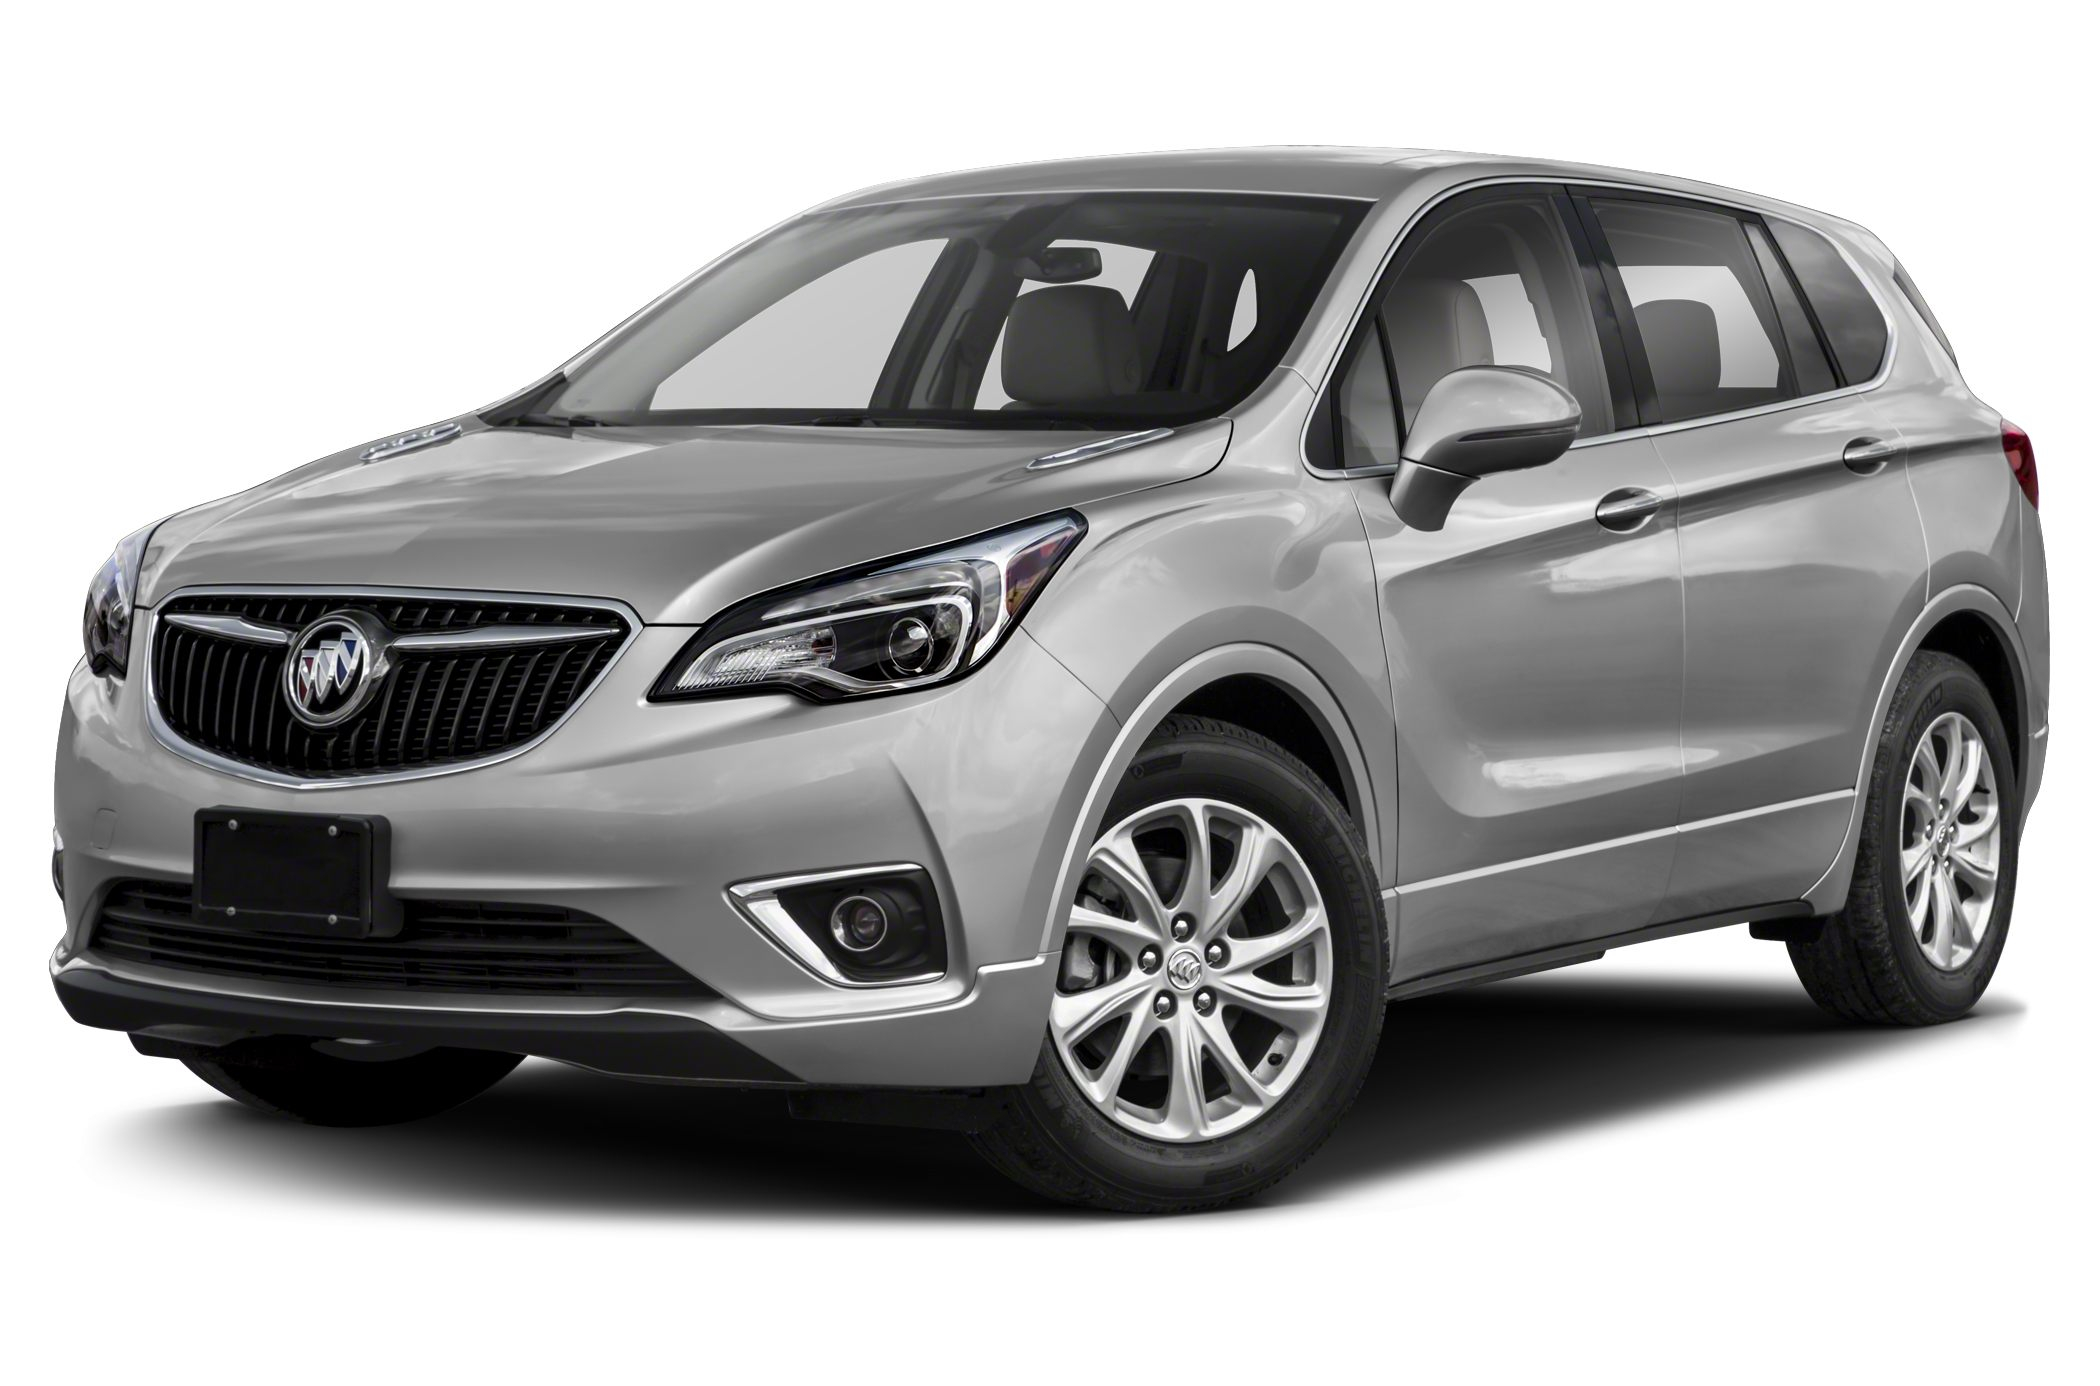 2020 Buick Envision Specs And Prices New 2021 Buick Envision Ground Clearance, Gas Mileage, Horsepower